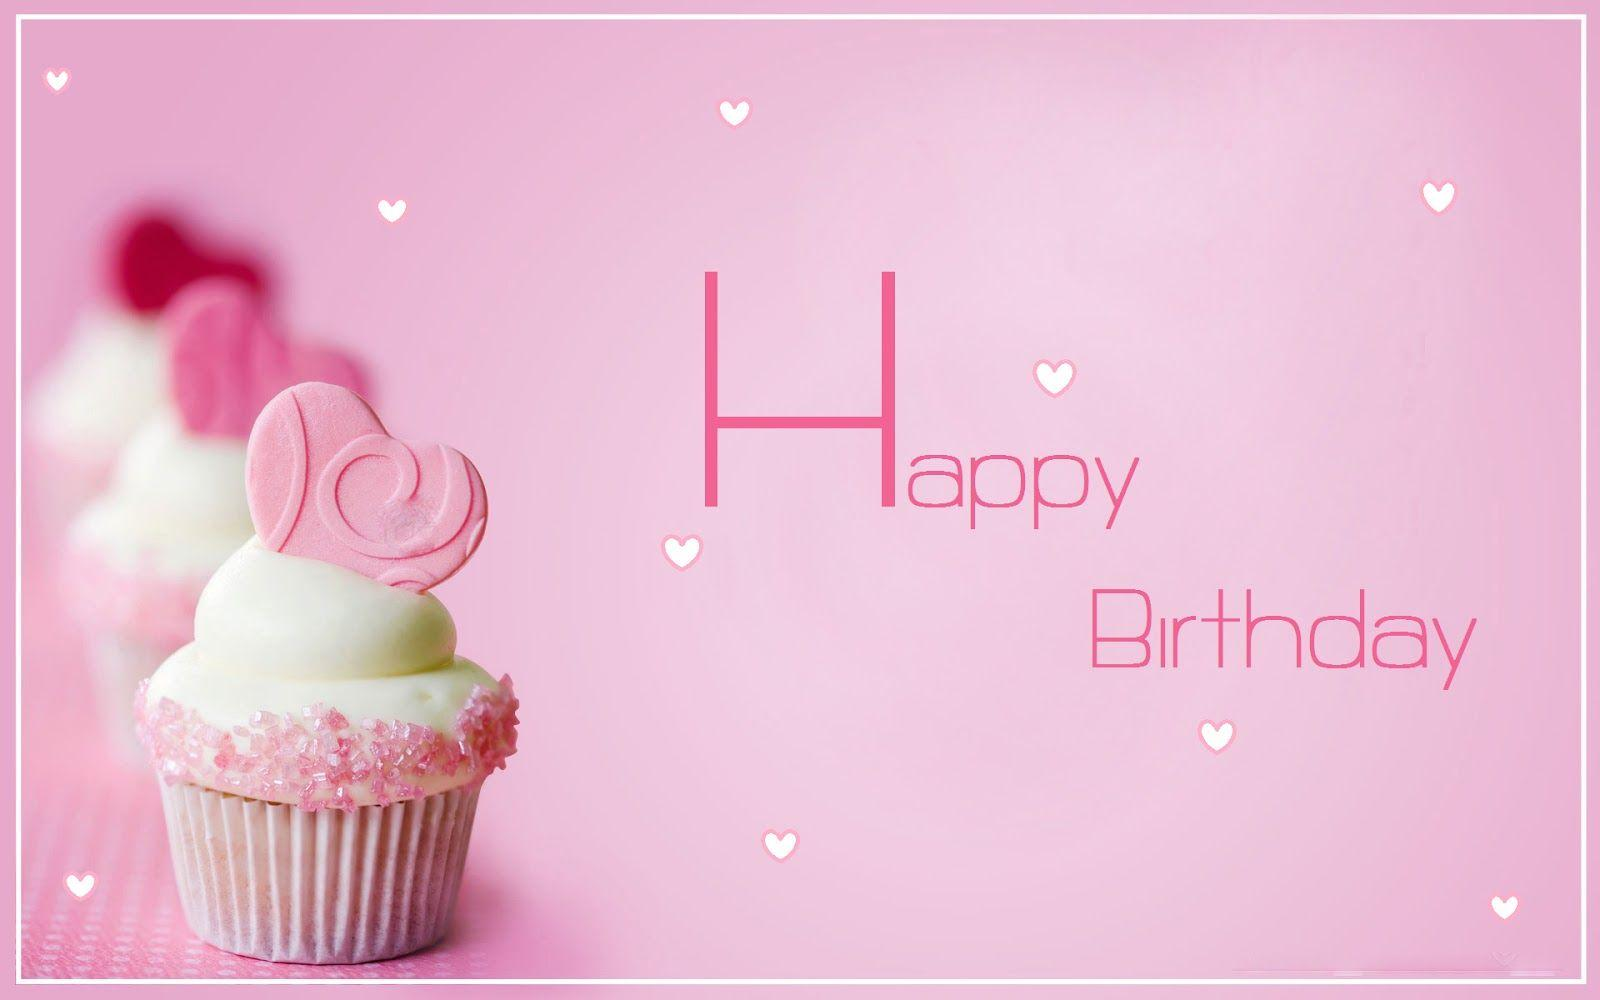 Wish you a very happy birthday words texted wishes card image